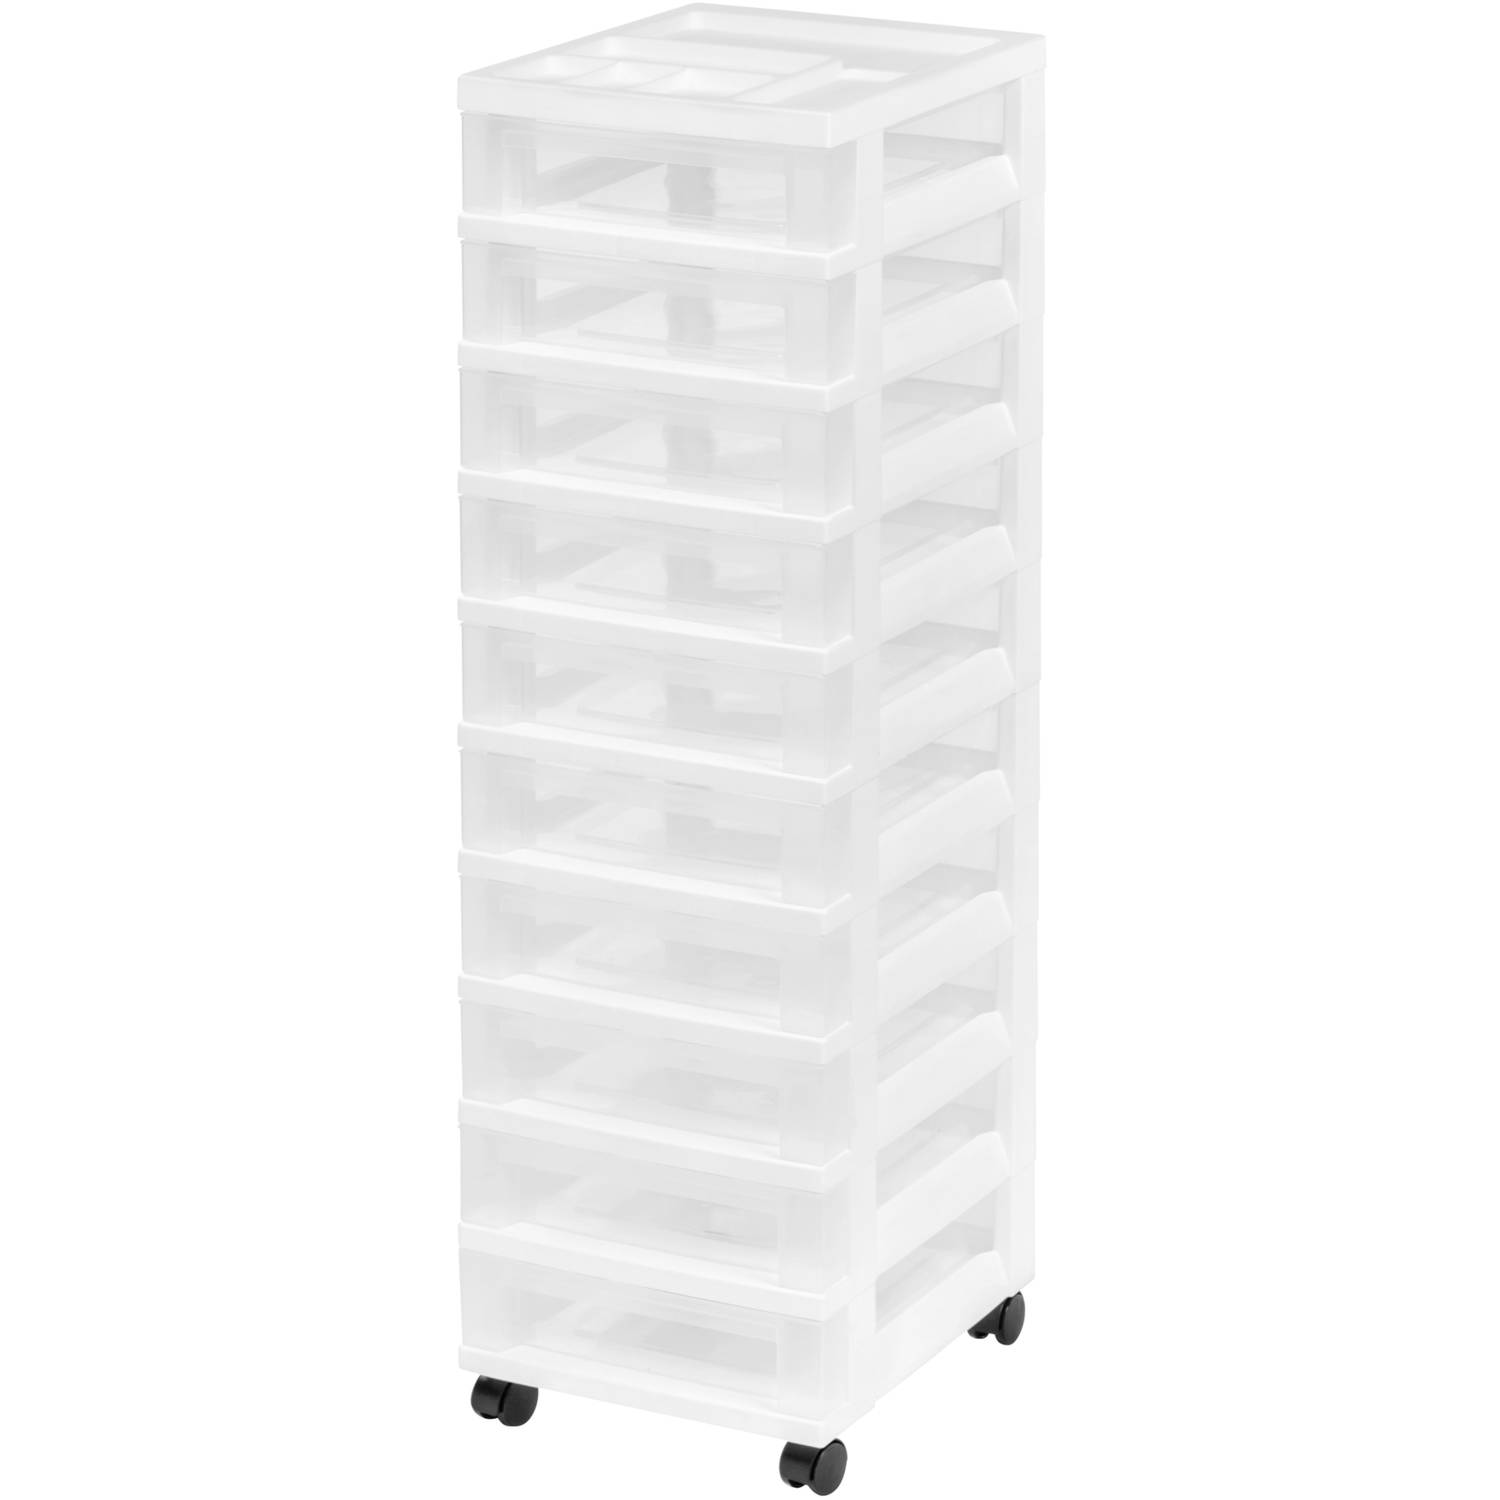 IRIS 10-Drawer Rolling Storage Cart with Organizer Top, White by IRIS USA, Inc.